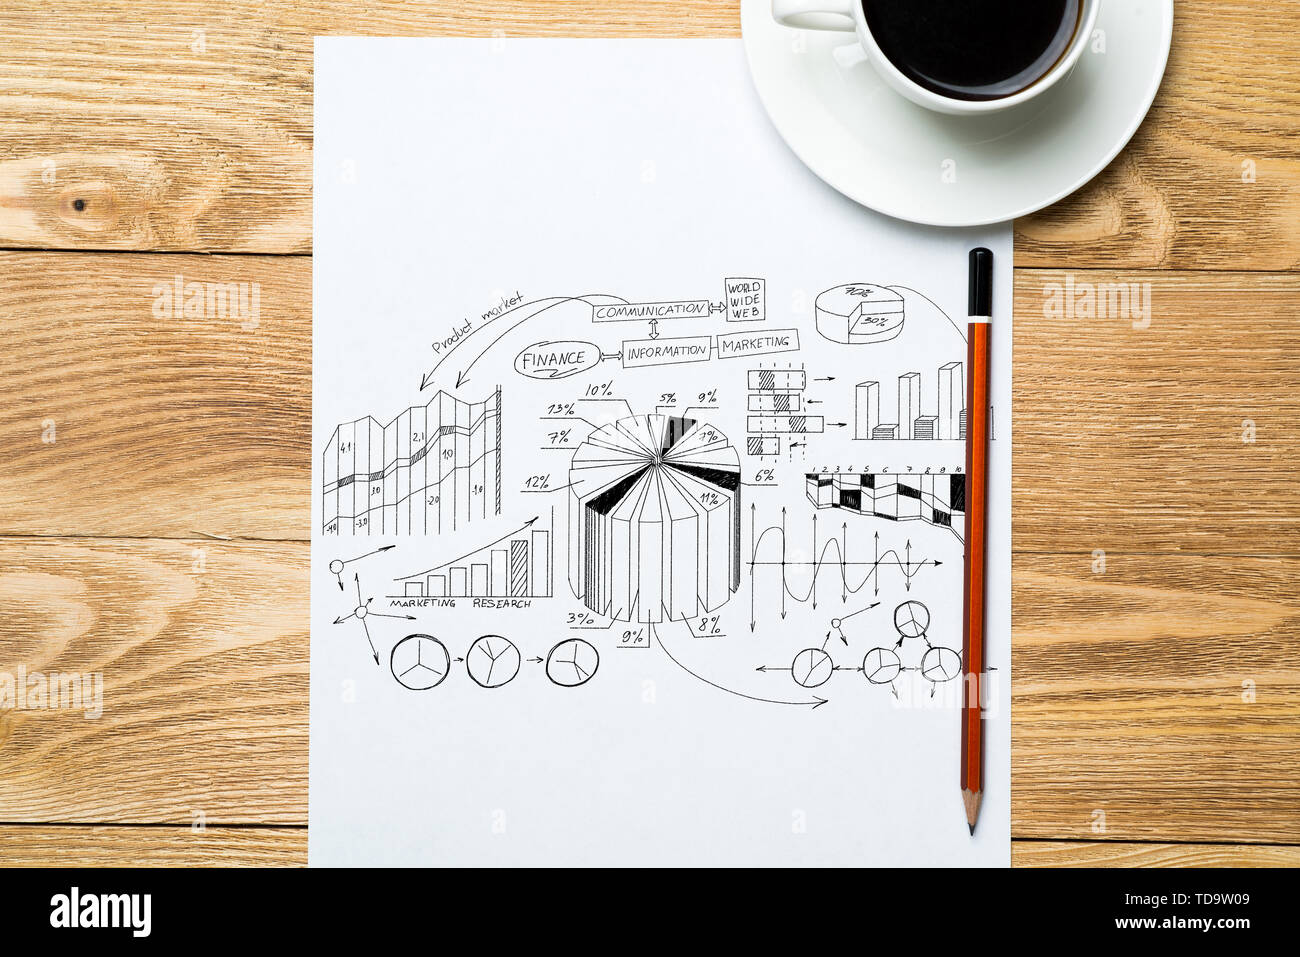 Notepad with idea sketches coffee cup and pencil on wooden table - Stock Image